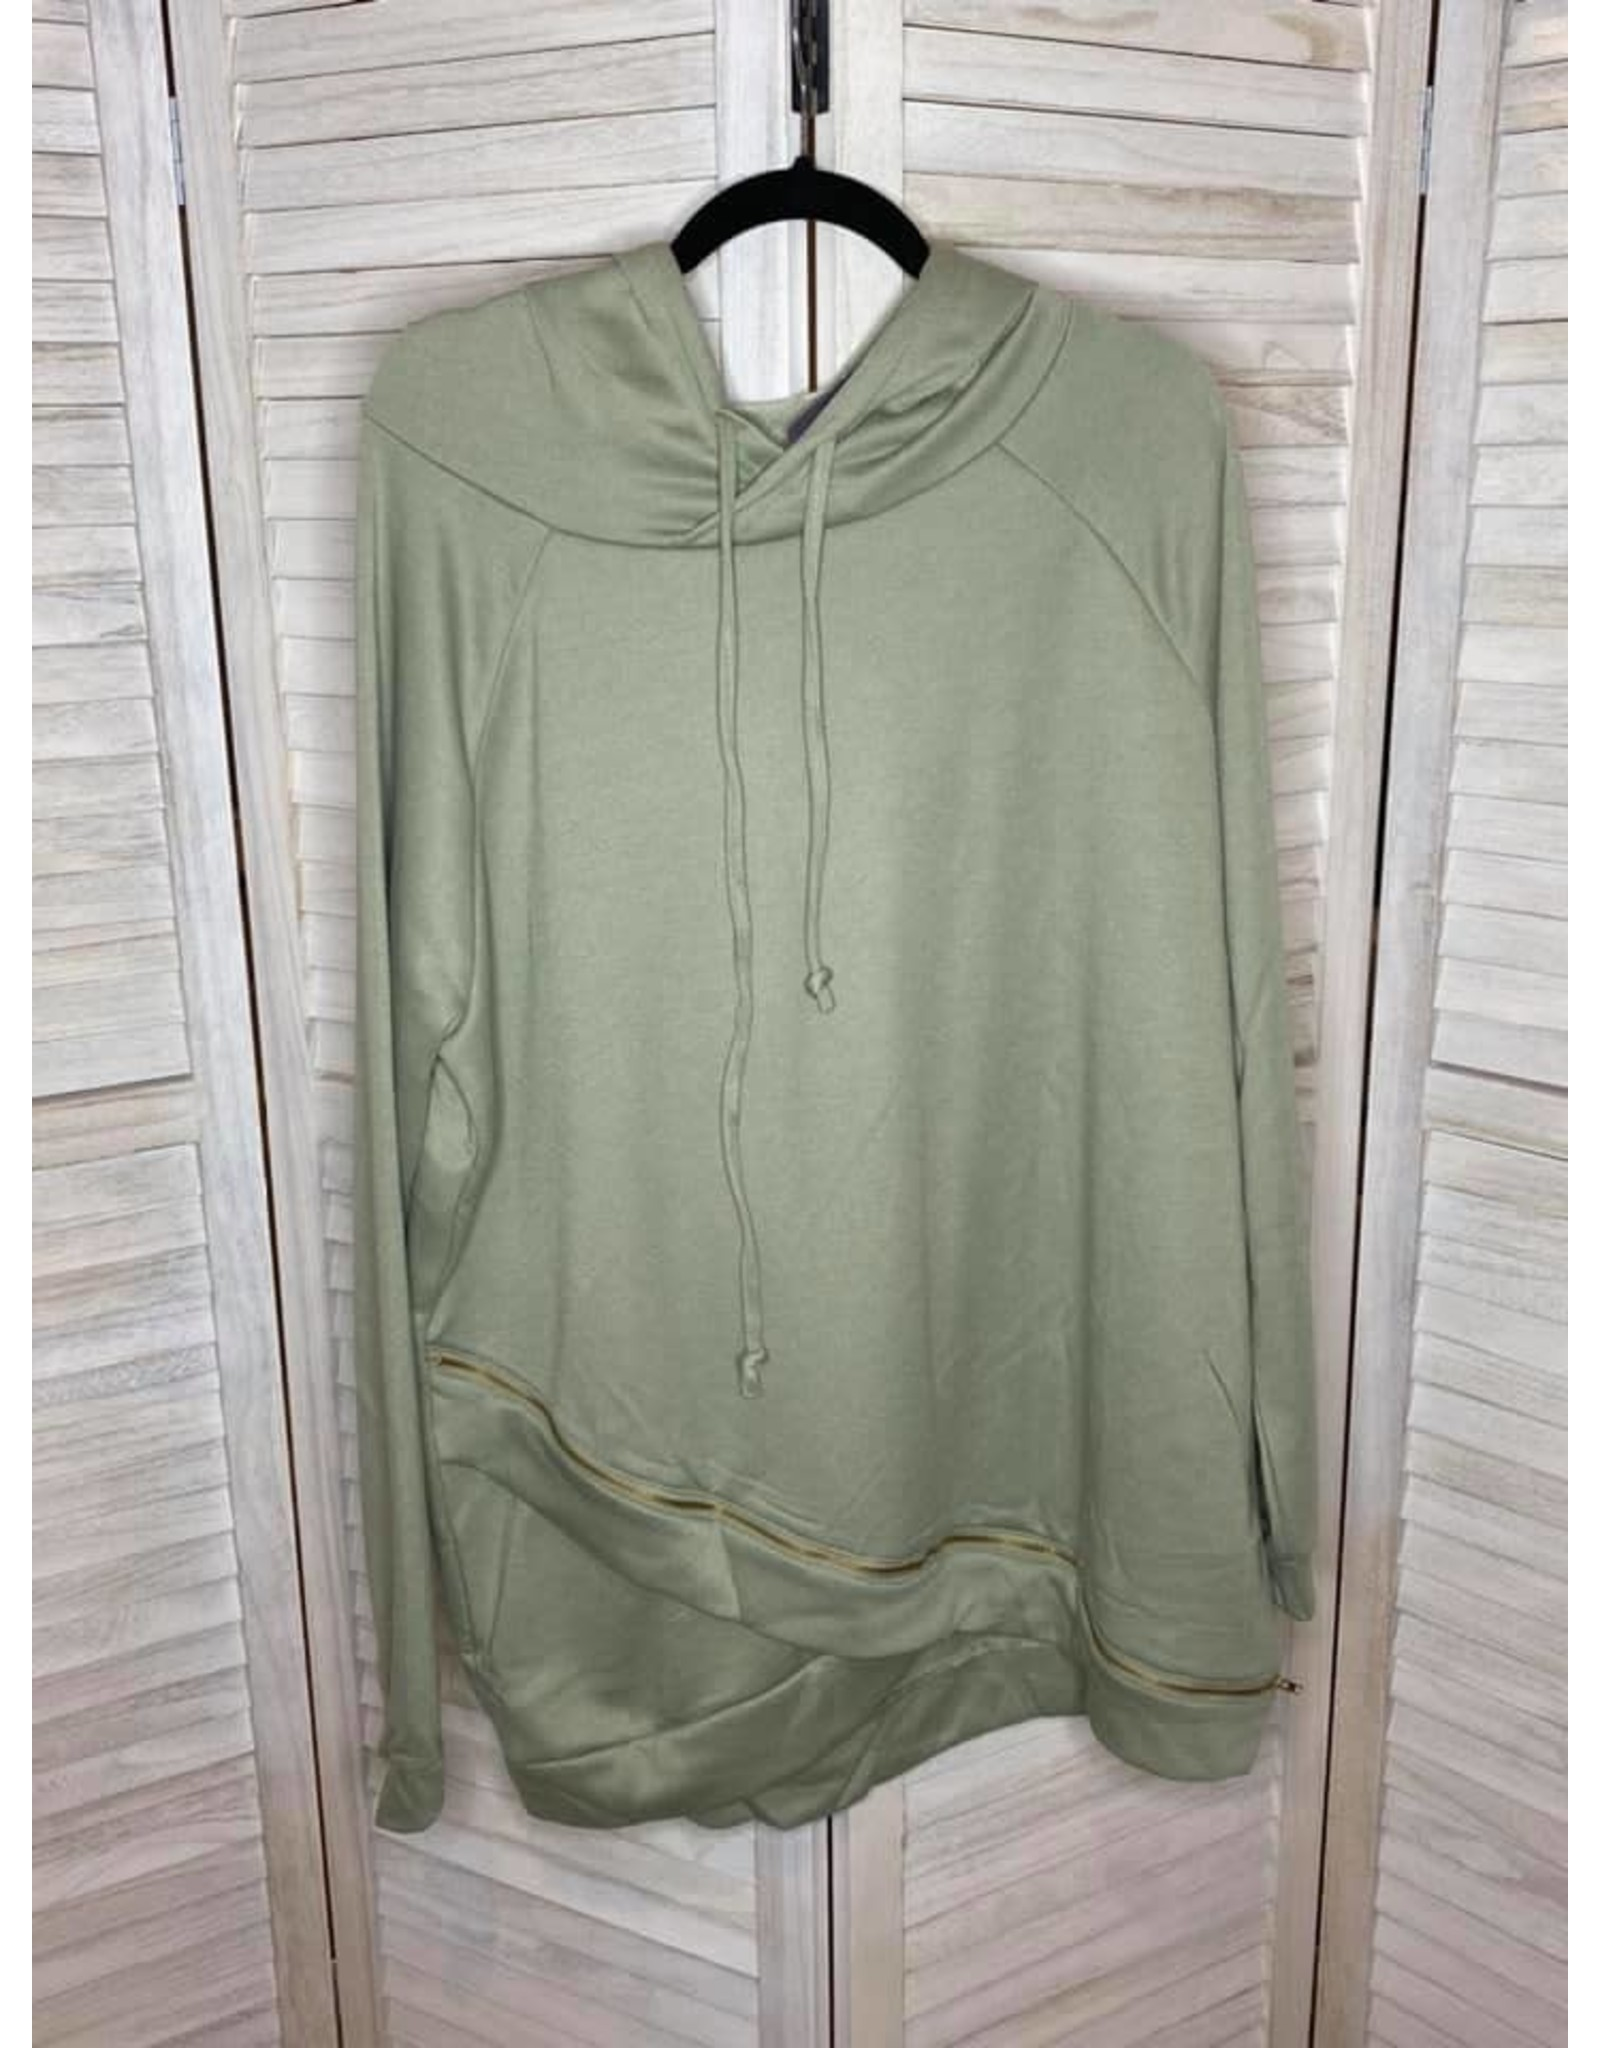 Trending Times Sage Hoodie with Zipper Detail - Reg and Plus